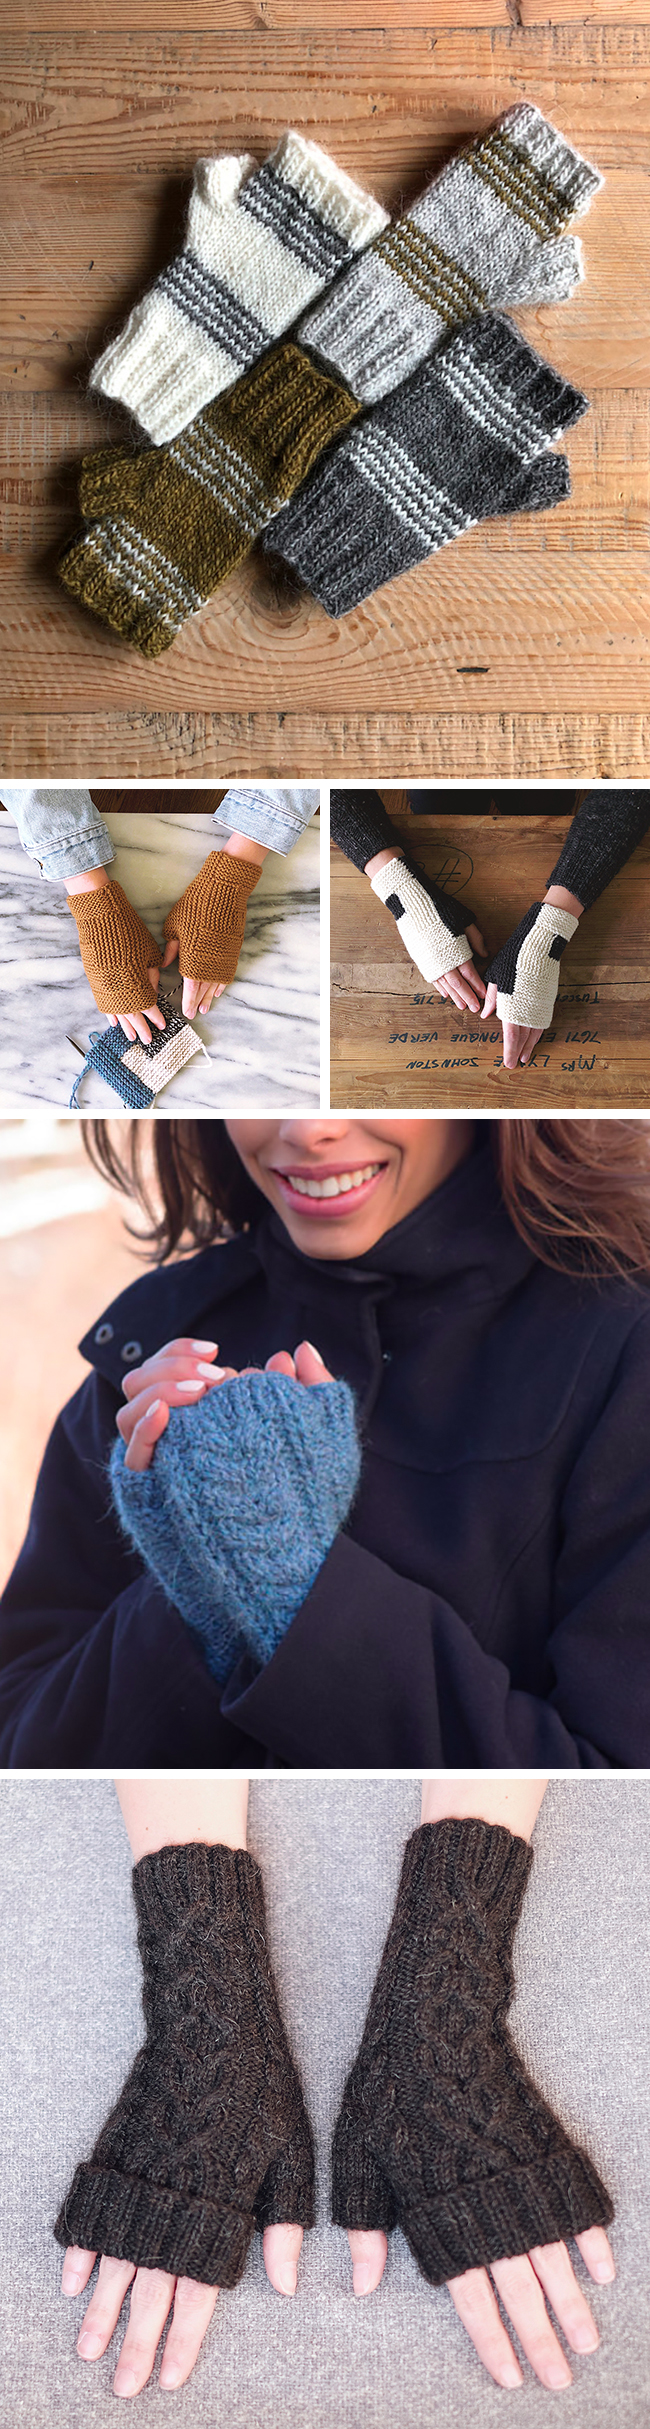 Quick Knits: Fingerless mitts (gift knitting ideas and free patterns)